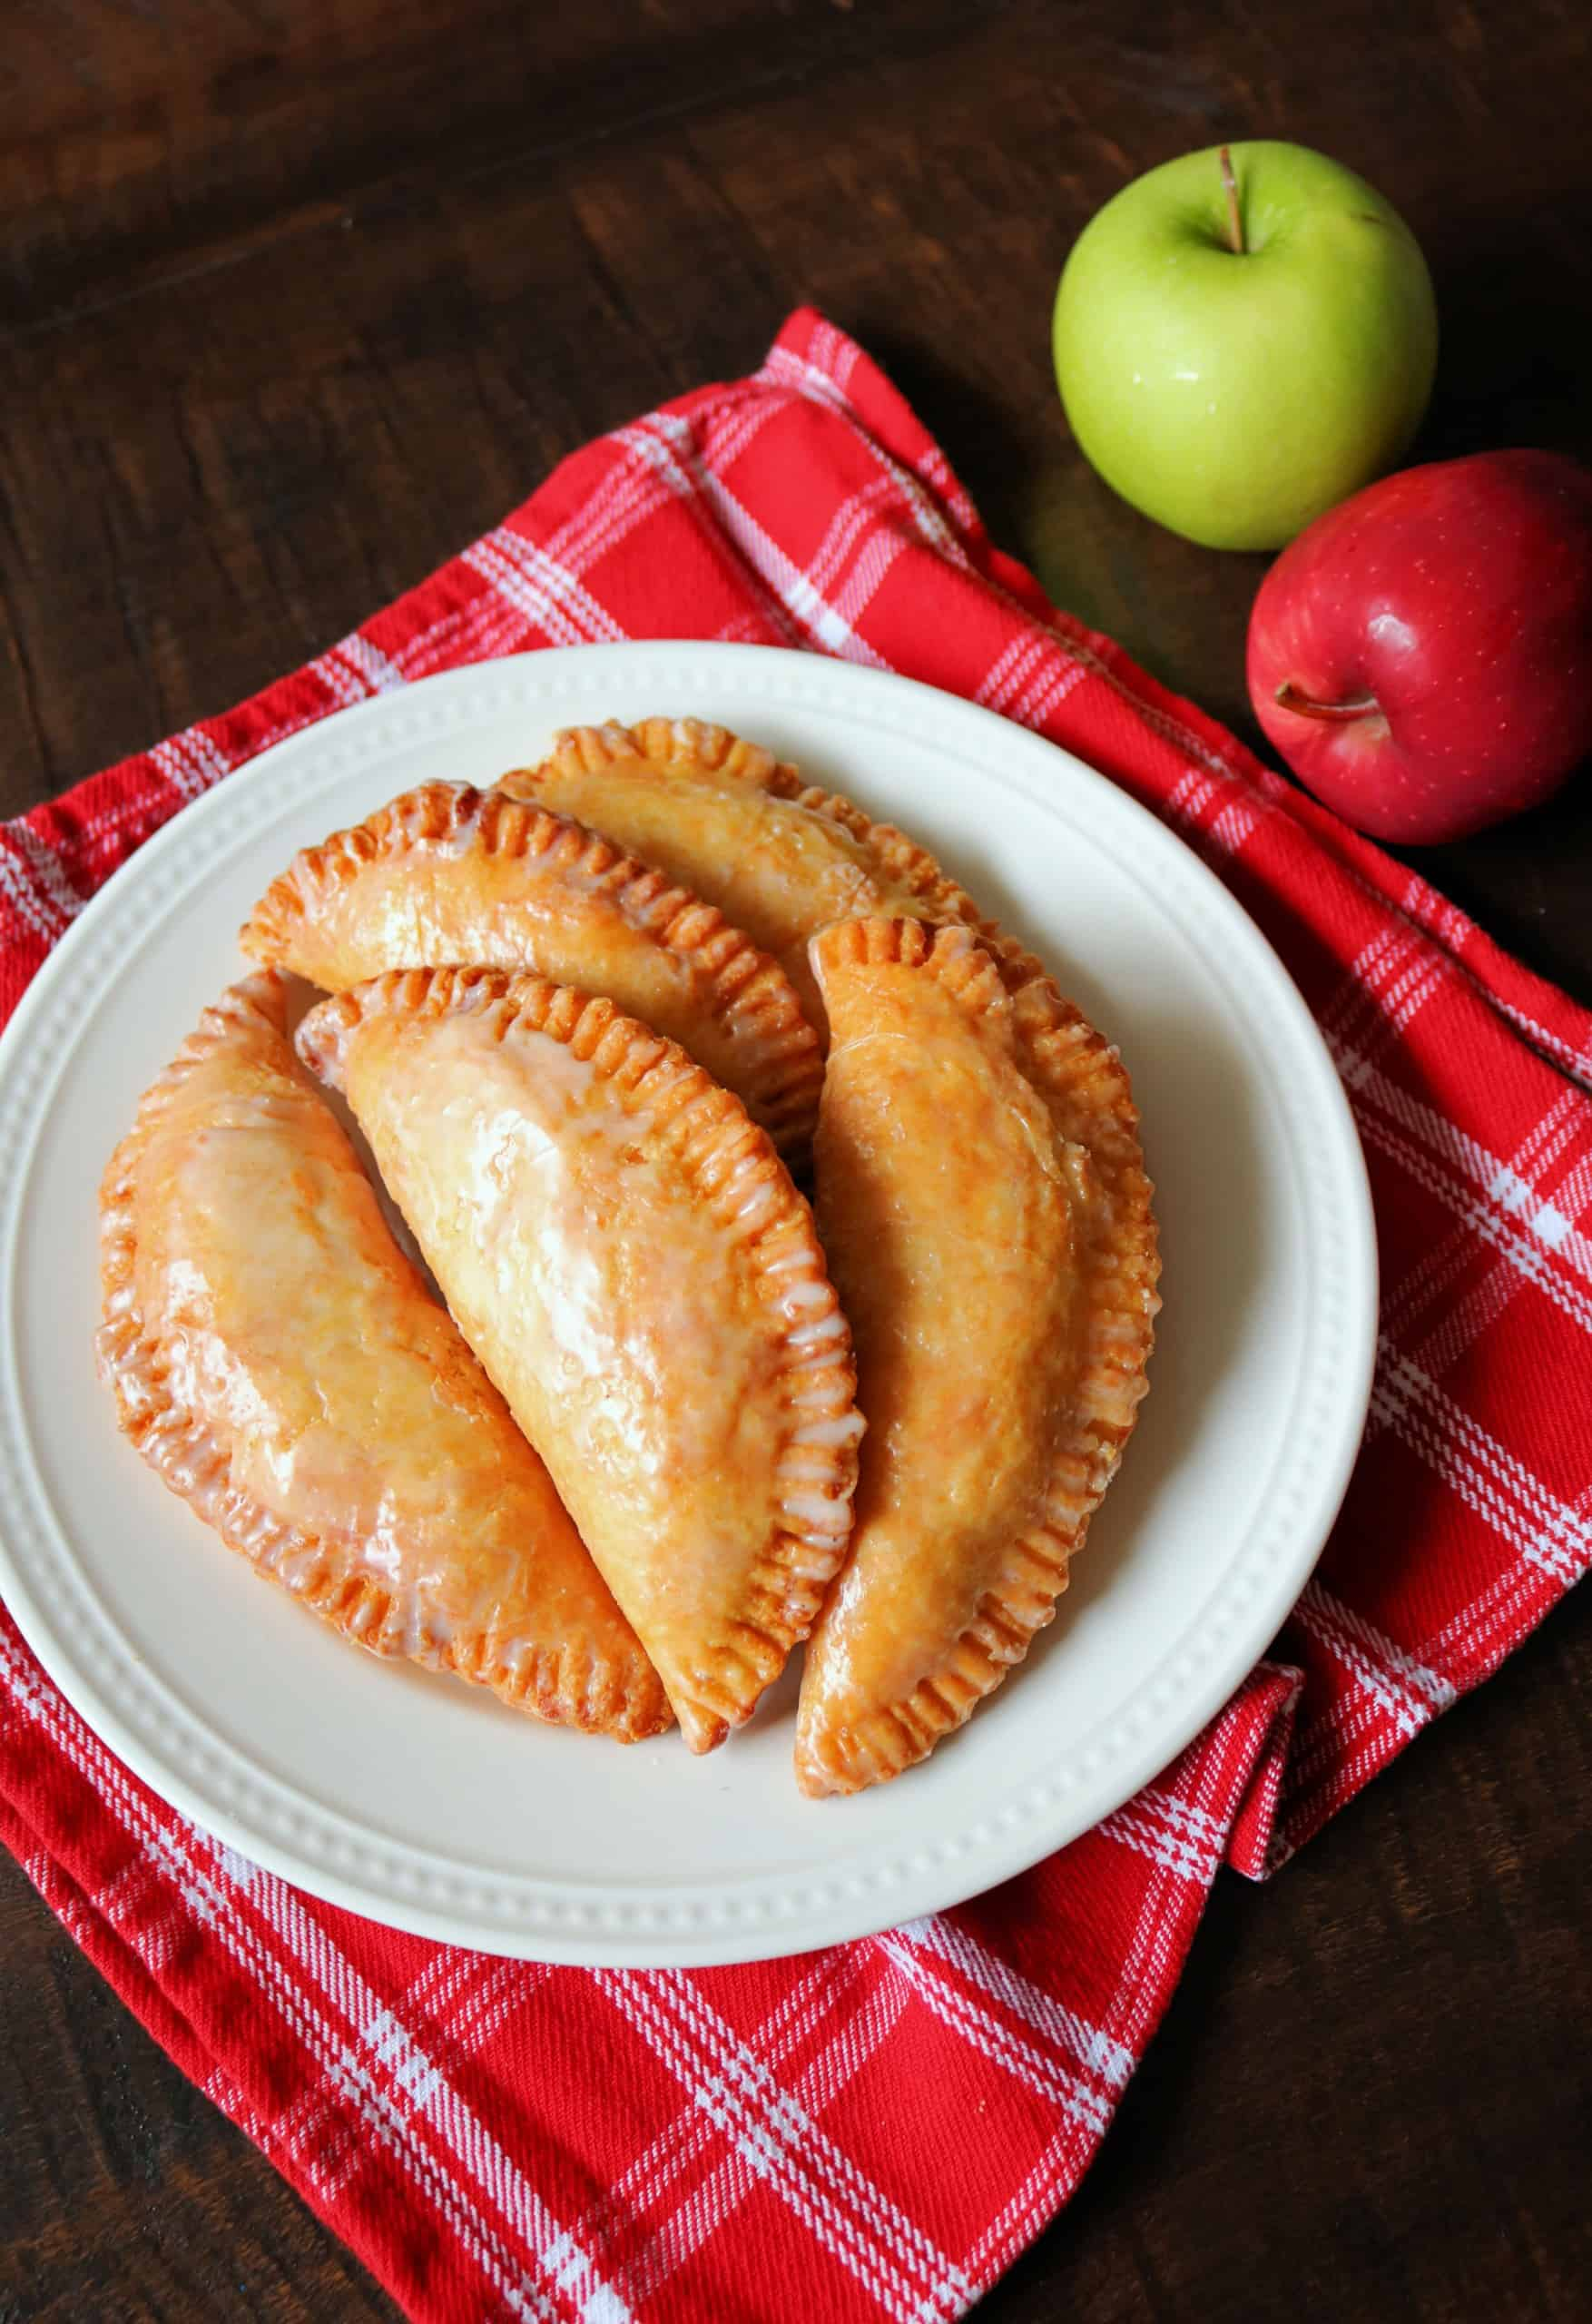 There's nothing better than Southern Fried Apple Pies in the Fall! Check out my Best Fried Apple Pies Recipe that's made completely homemade from scratch! These old fashioned Amish-Style Fried Apple Hand Pies are so easy and delicious with a tender, flaky, and buttery pie crust, a cinnamon sugar apple pie filling, and a sweet powdered sugar glaze. #friedapplepies #applepie #falldesserts